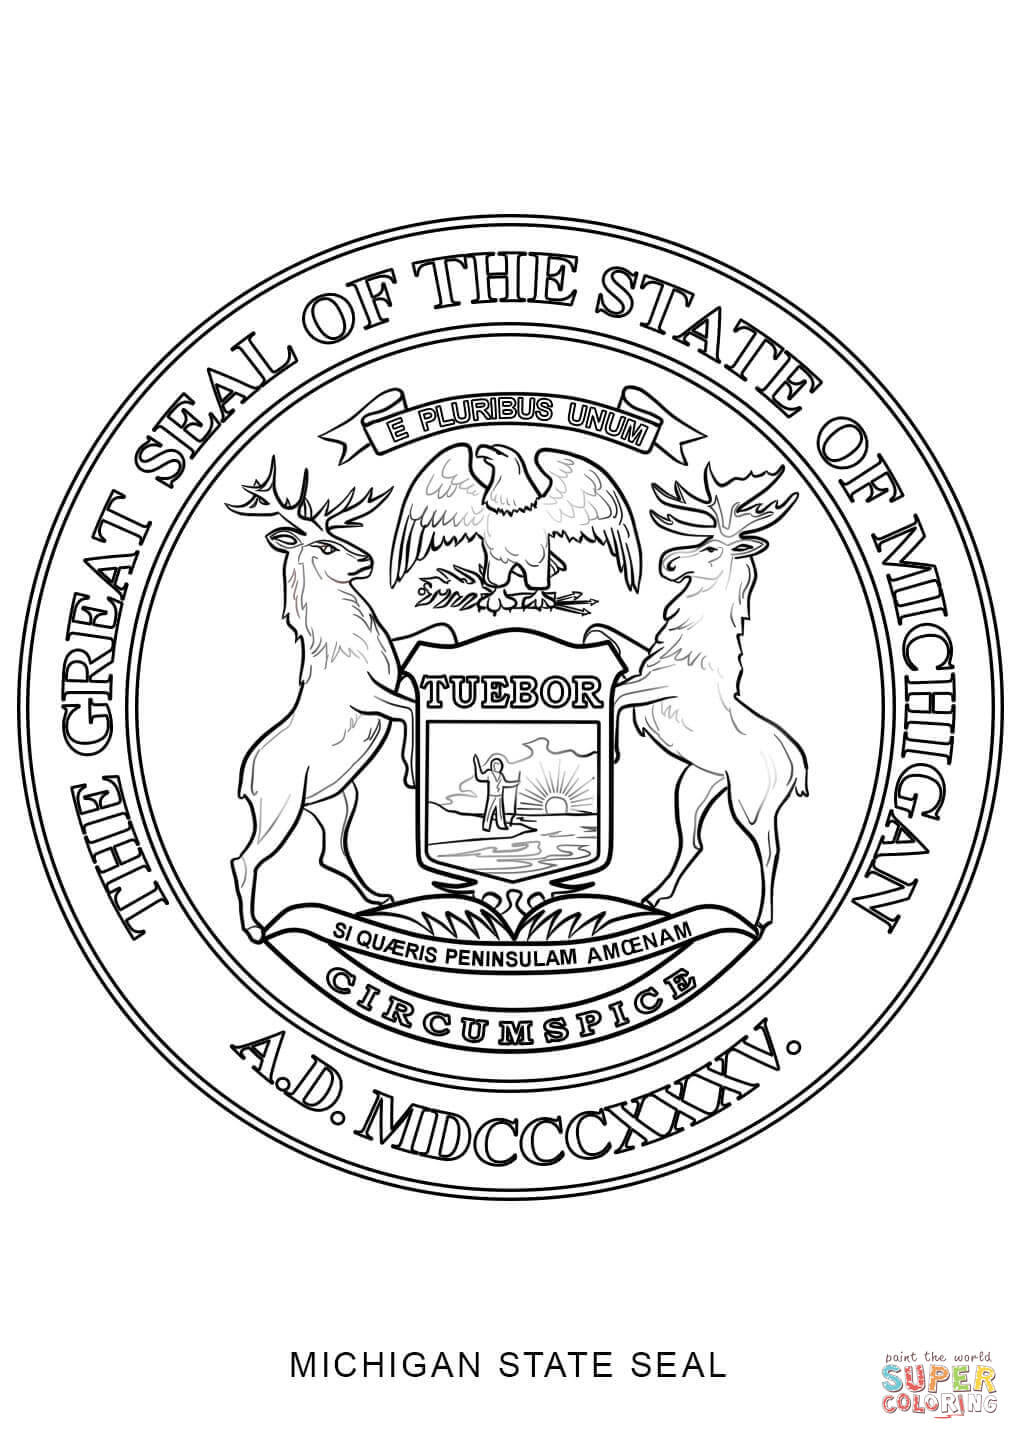 nc state seal coloring pages - photo#12